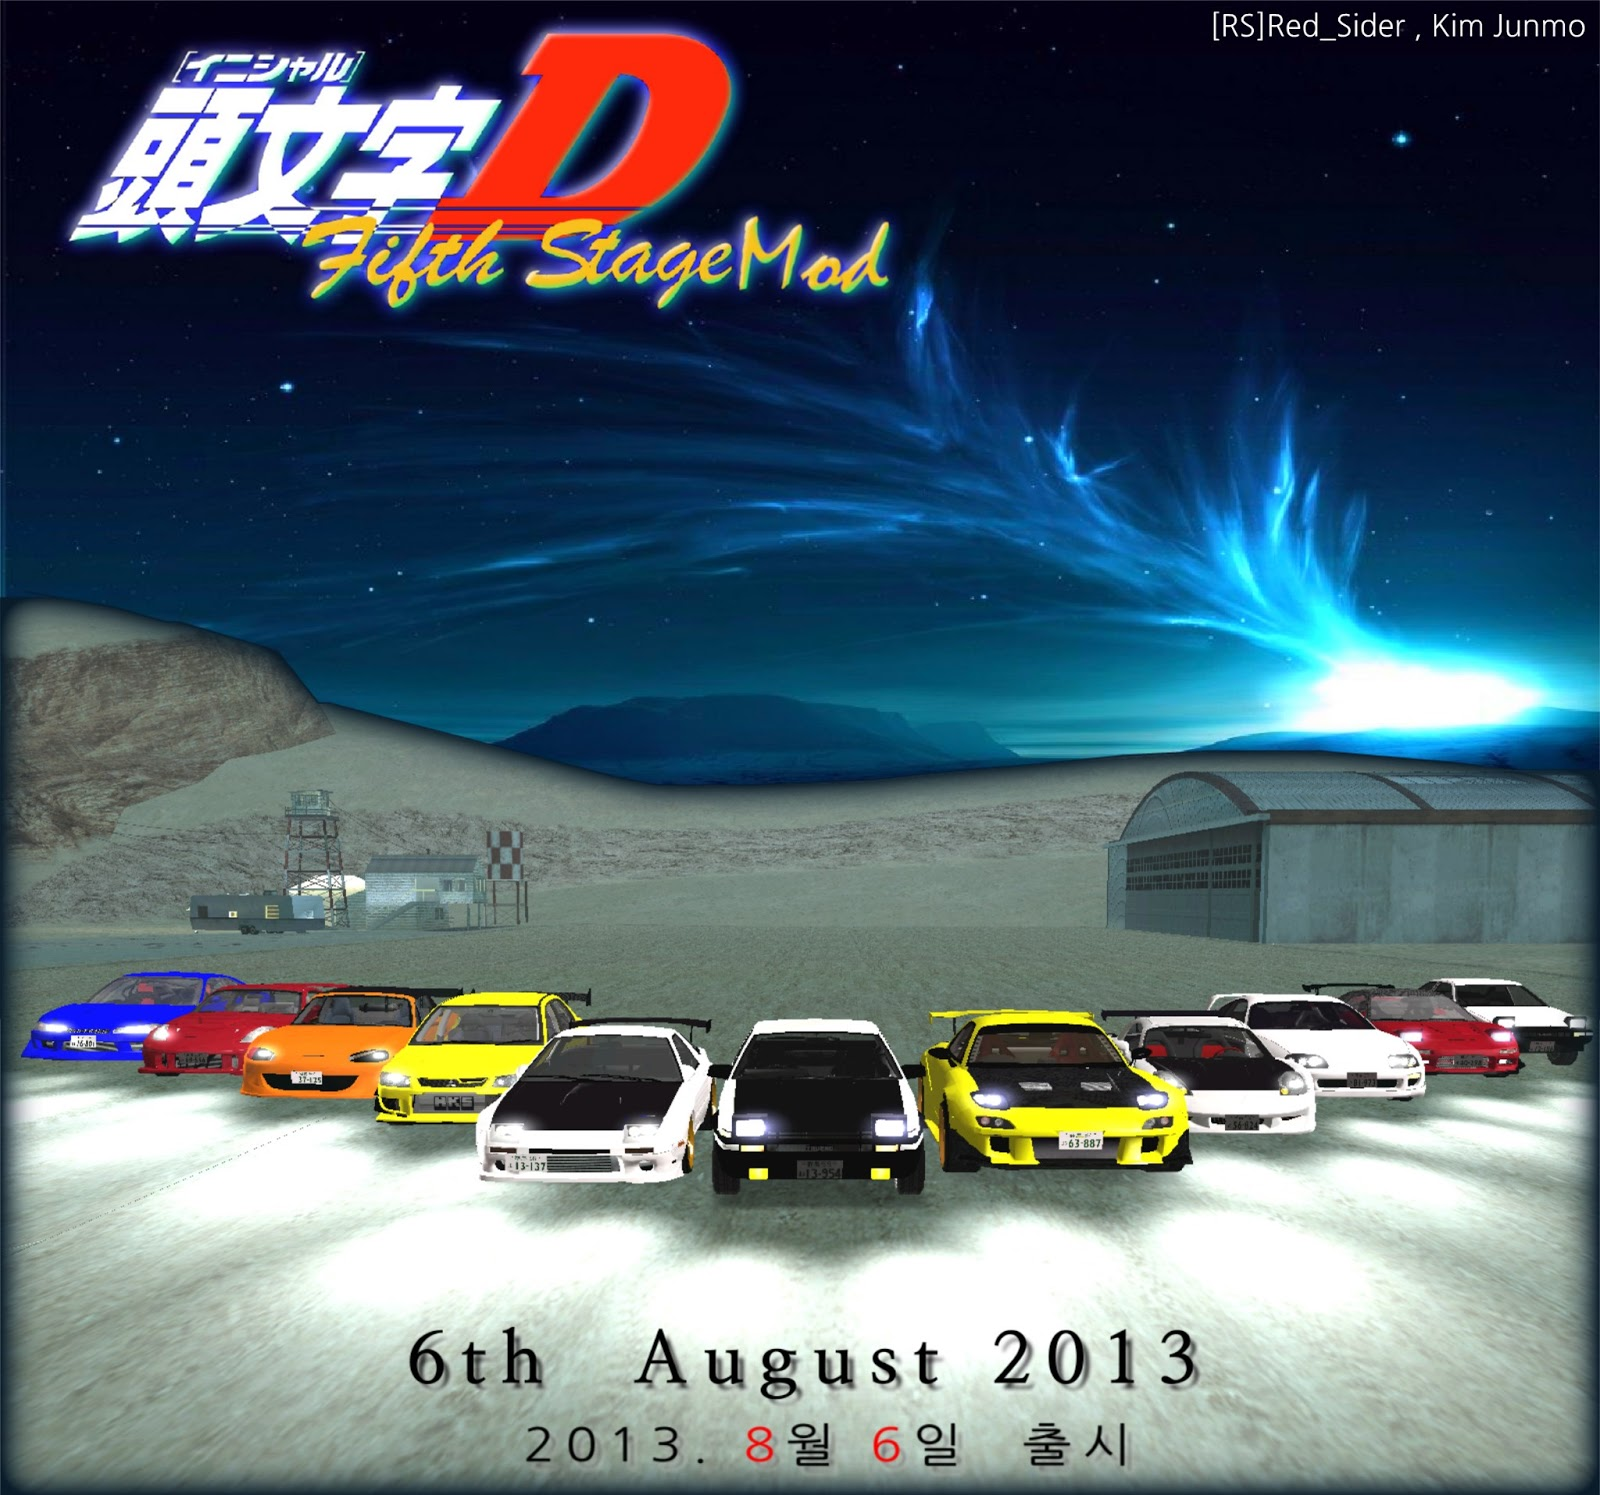 Red_Sider GTA Mods: Initial D Fifth Stage Mod [Release Date]